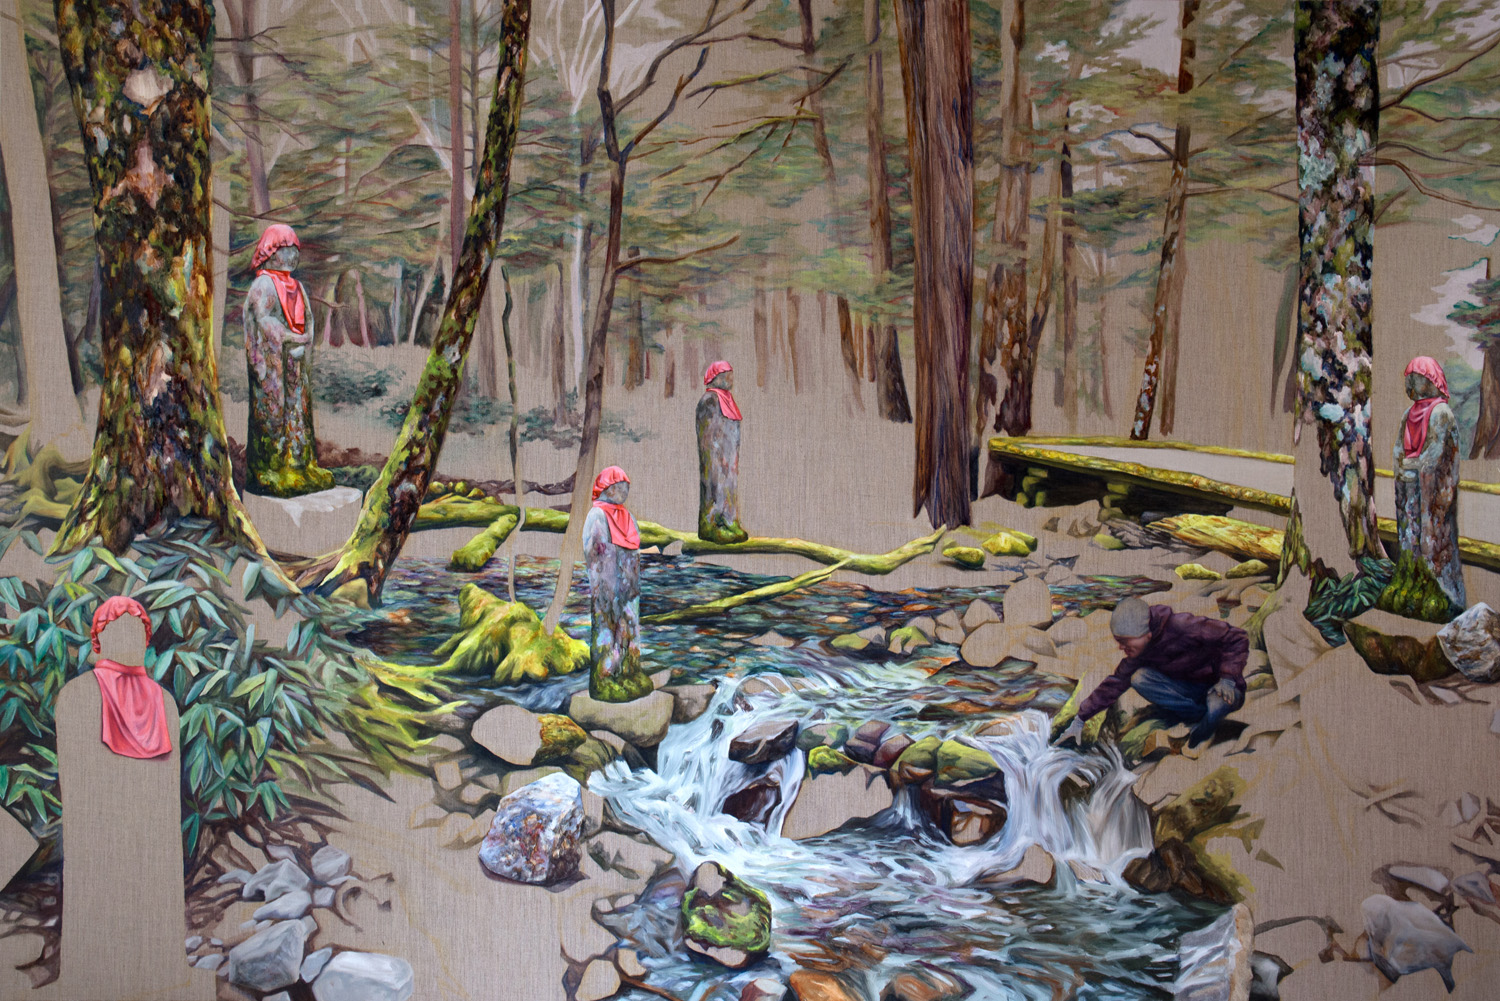 Kevin Chin, Unseen, 2014, oil on linen, 133 x 200 cm